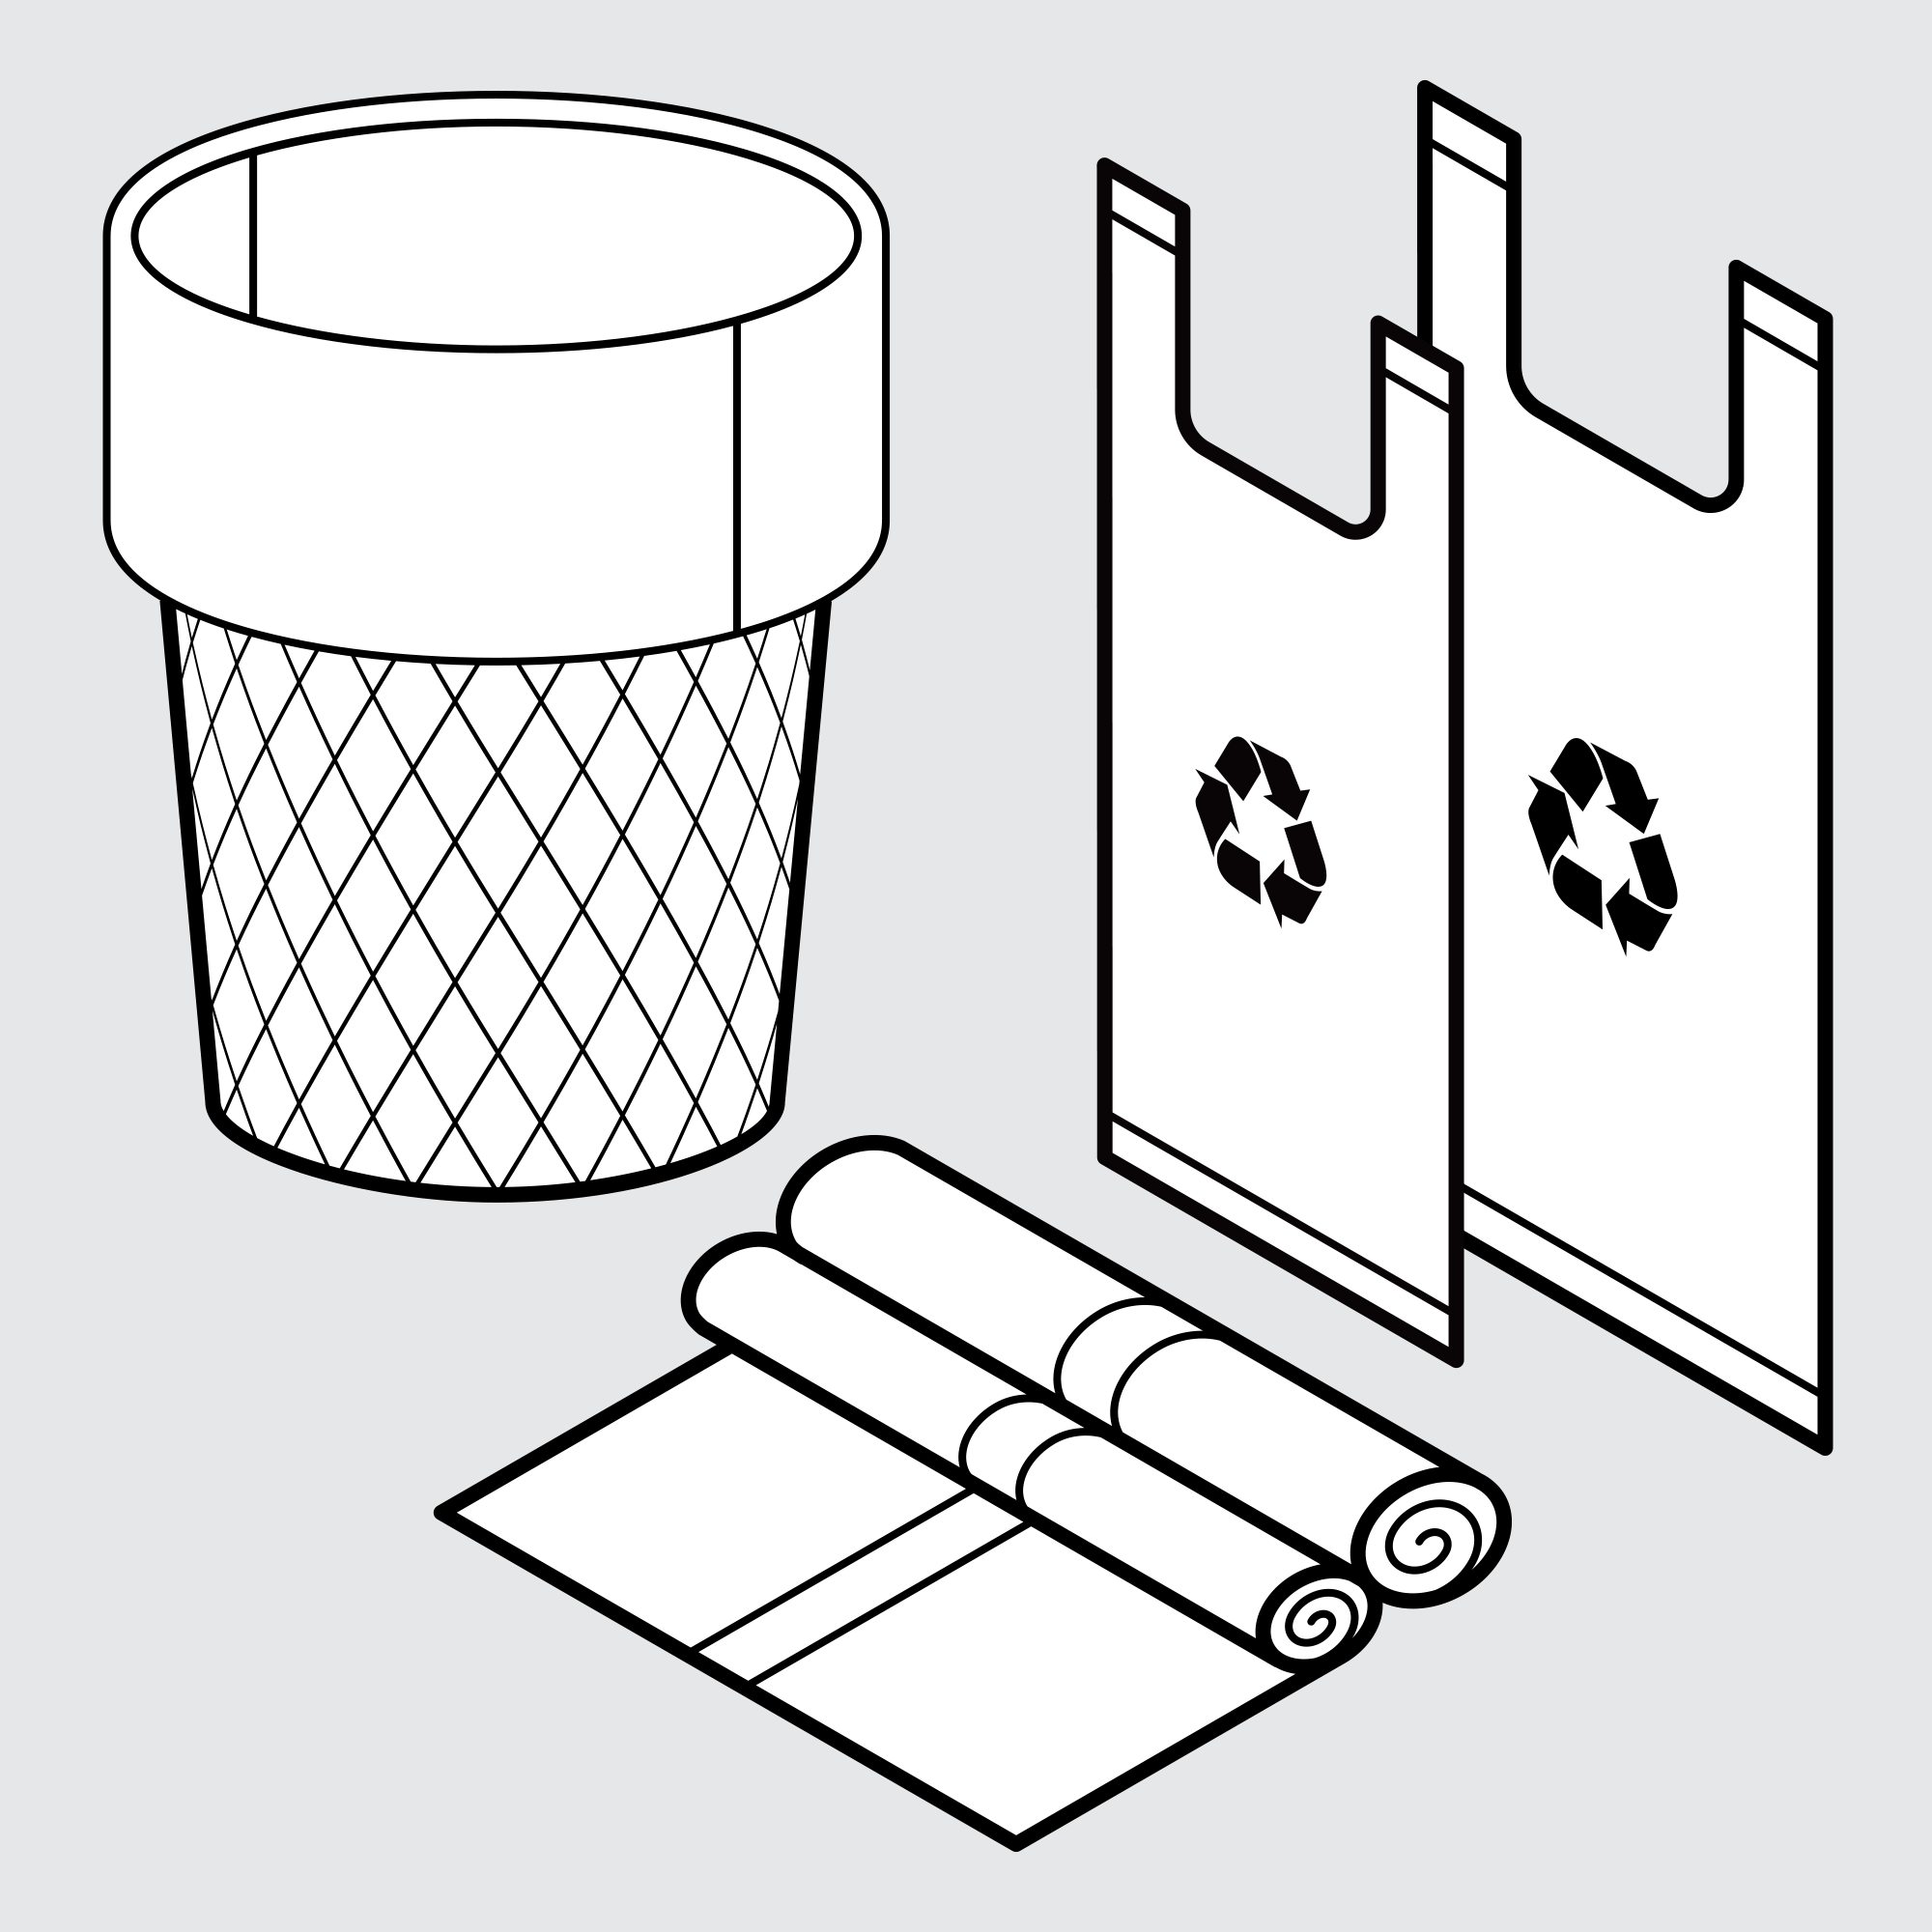 Drawing of Sample Bags for Rubbish and Refuse